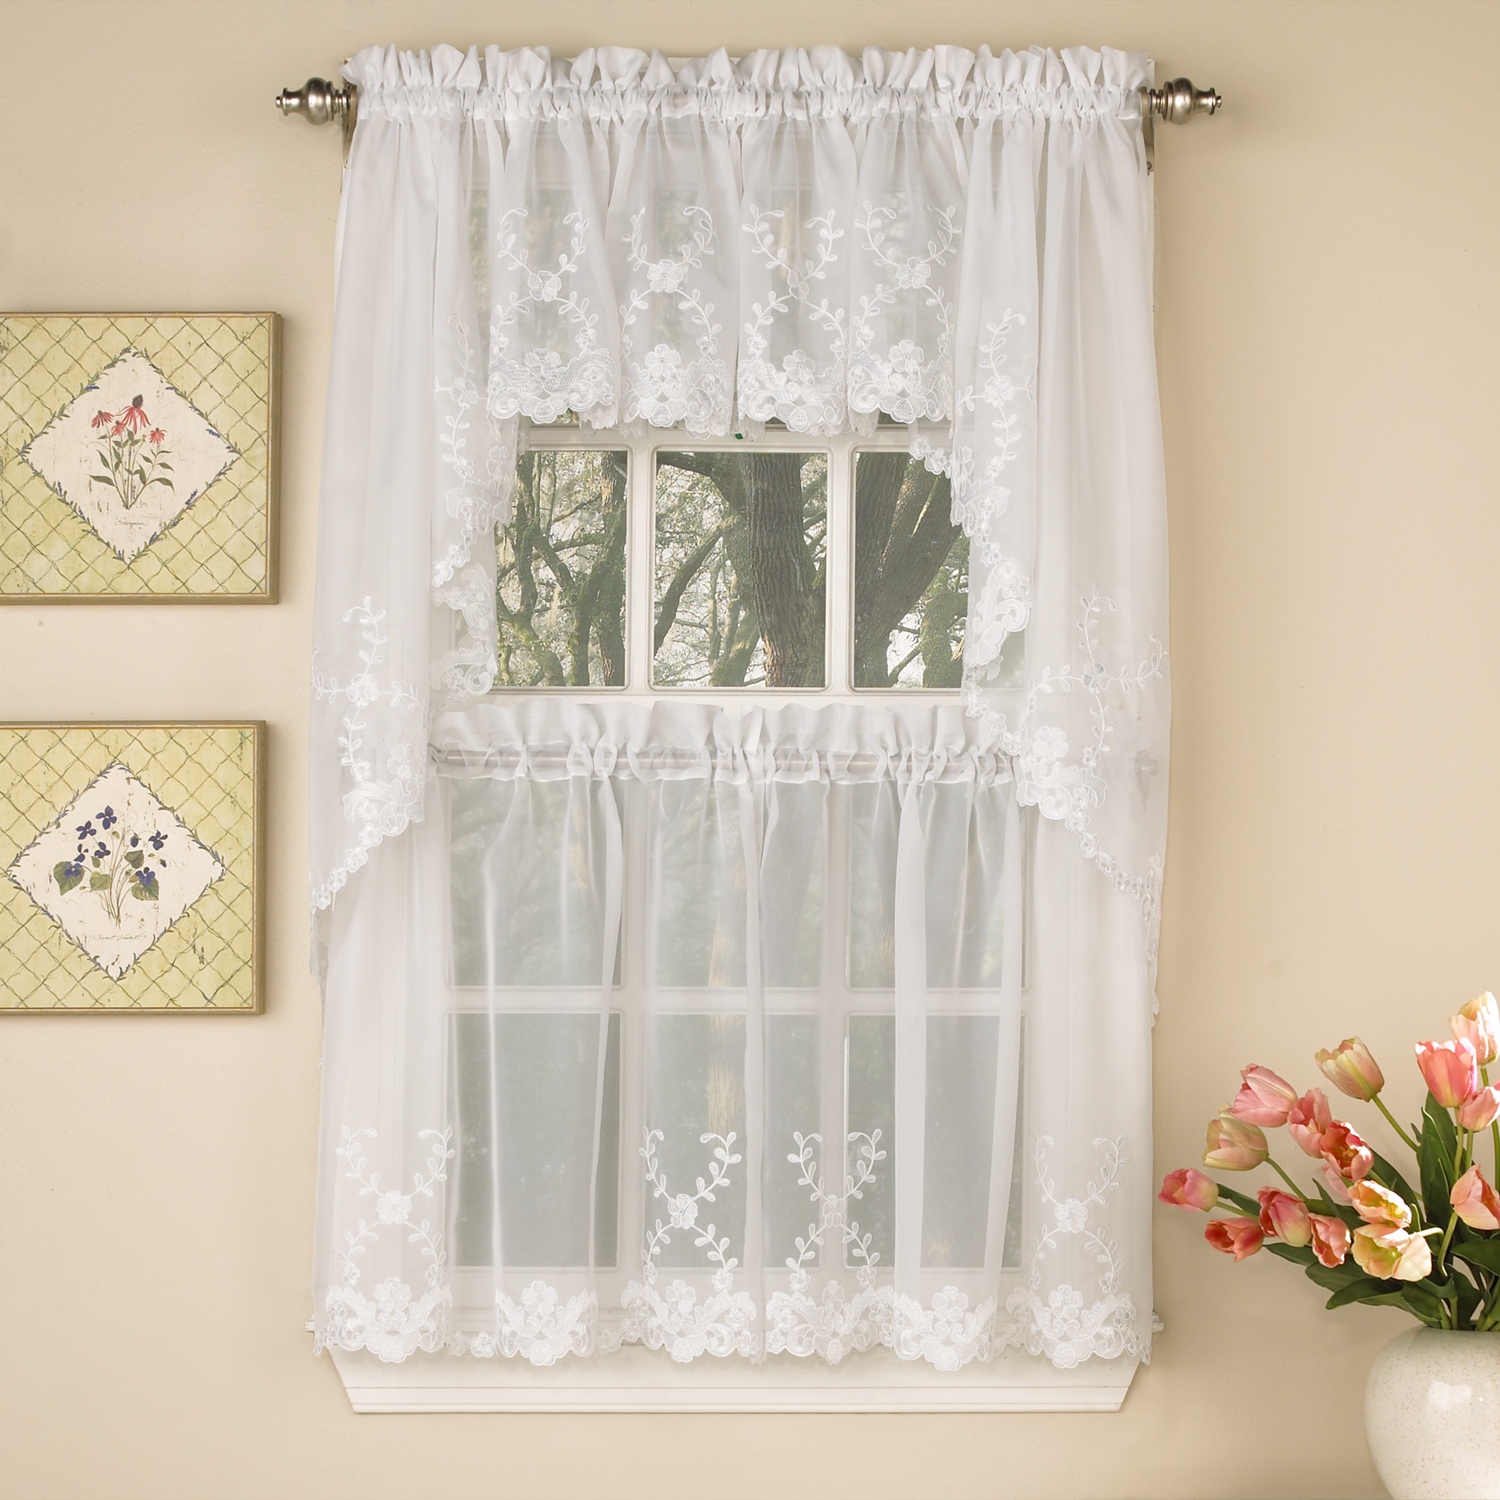 "Laurel Leaf Sheer Voile Embroidered Kitchen Curtains 24"", 36"" Tier Pair, 38"" Swag Pair or 12"" Valance"